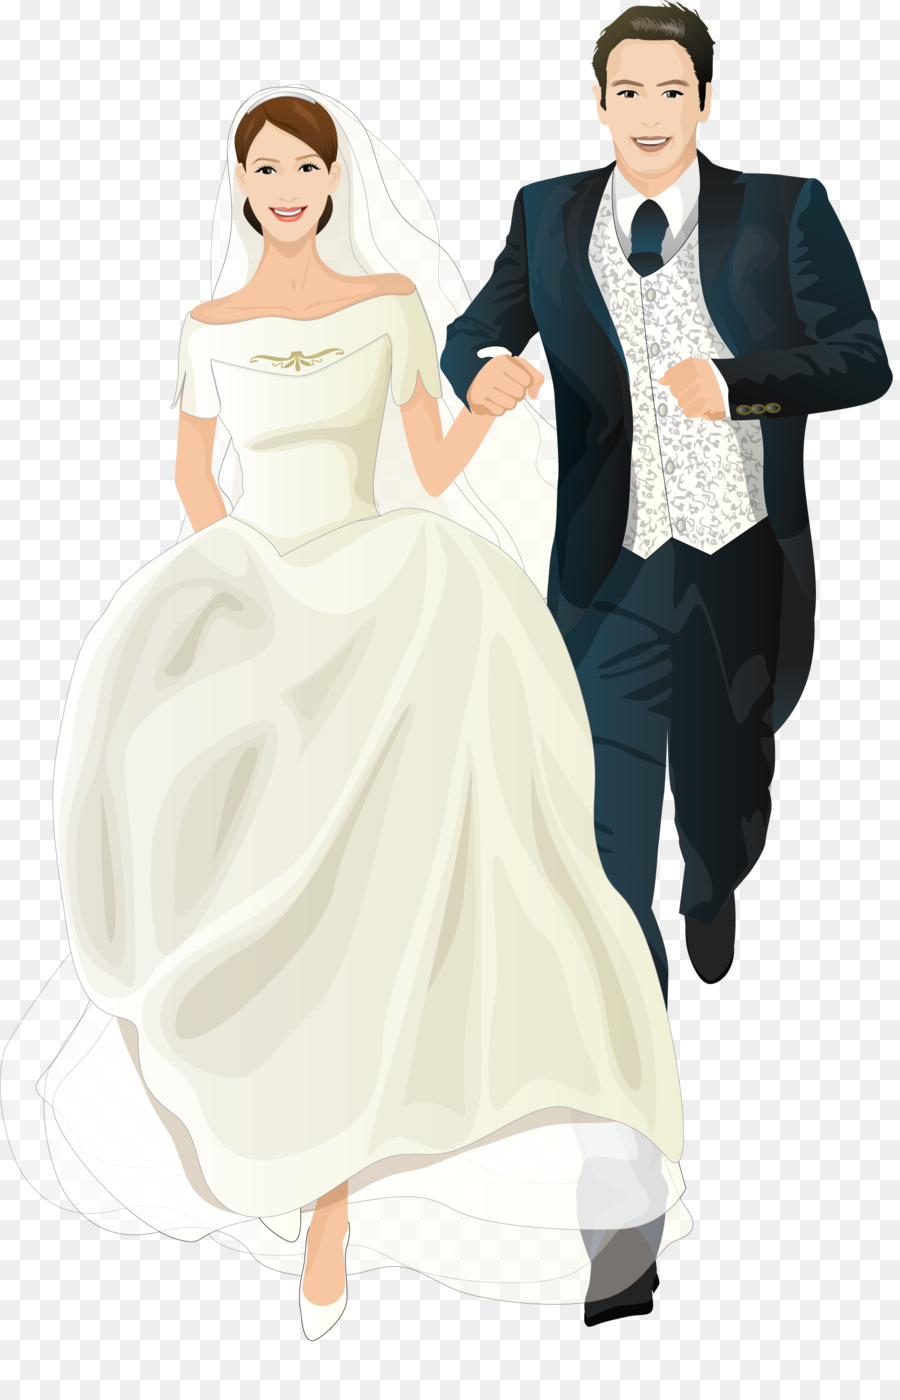 wedding invitation bridegroom marriage cartoon married couple png